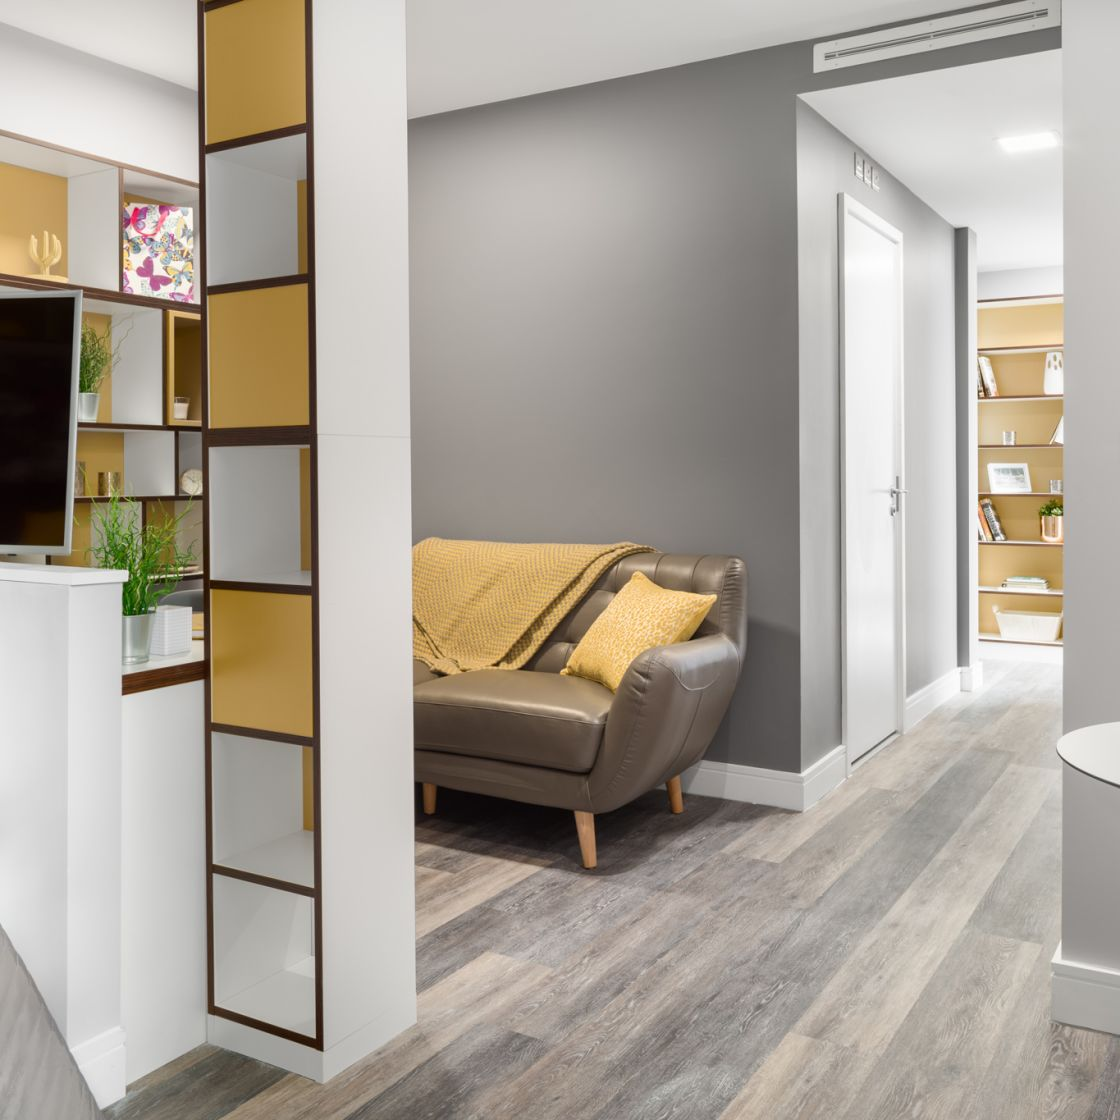 Grande Student Apartment in Liverpool. separate living area. IconInc, The Ascent